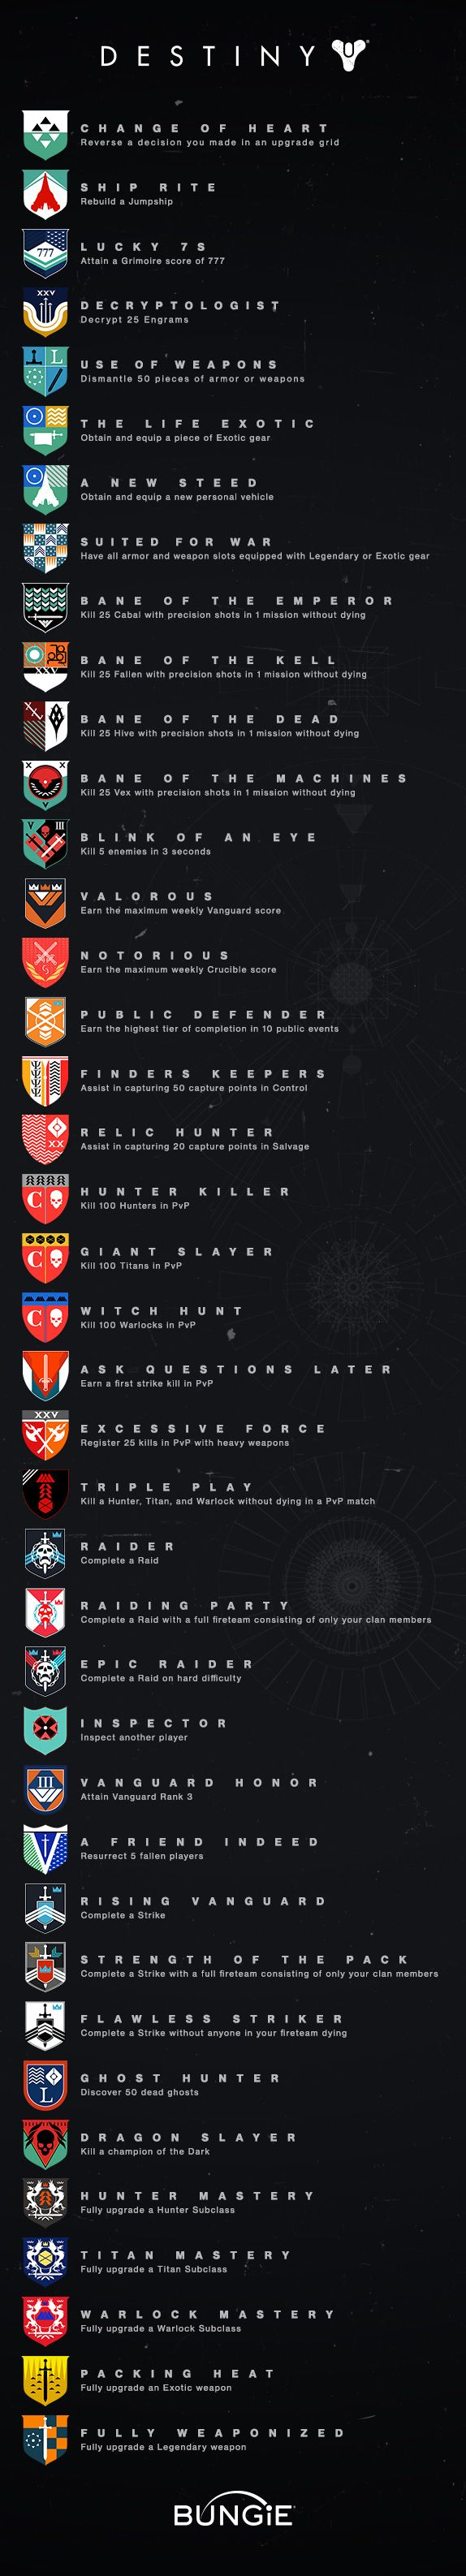 destiny_trophies_achievements